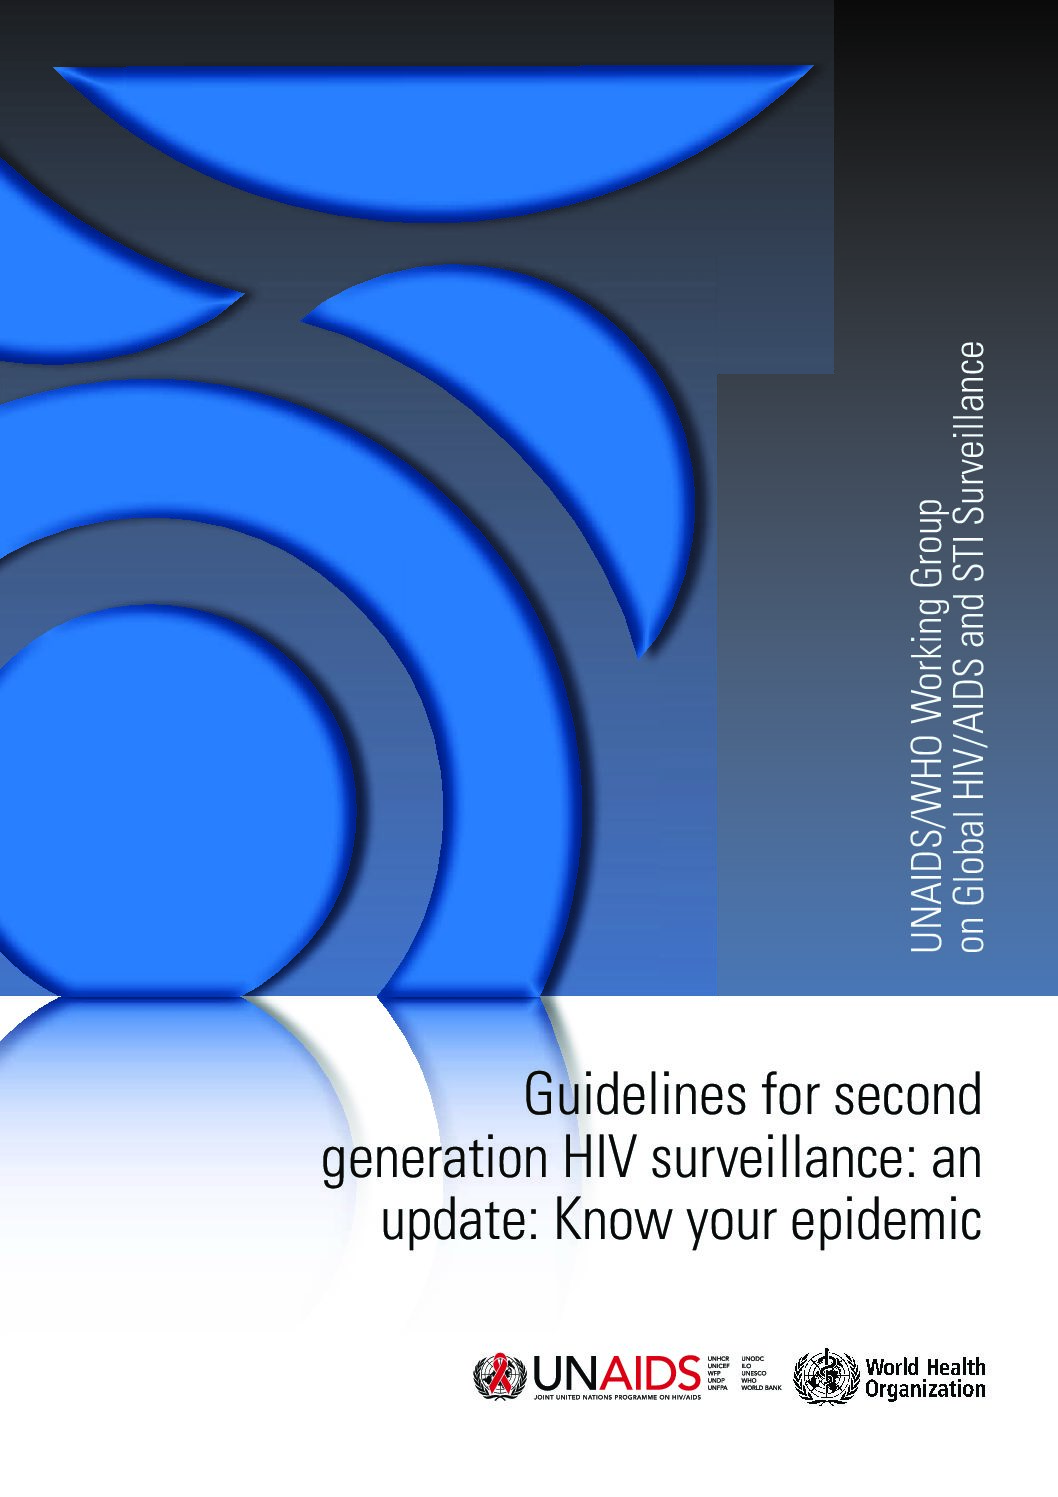 Guidelines for second generation HIV surveillance: an update: Know your epidemic.